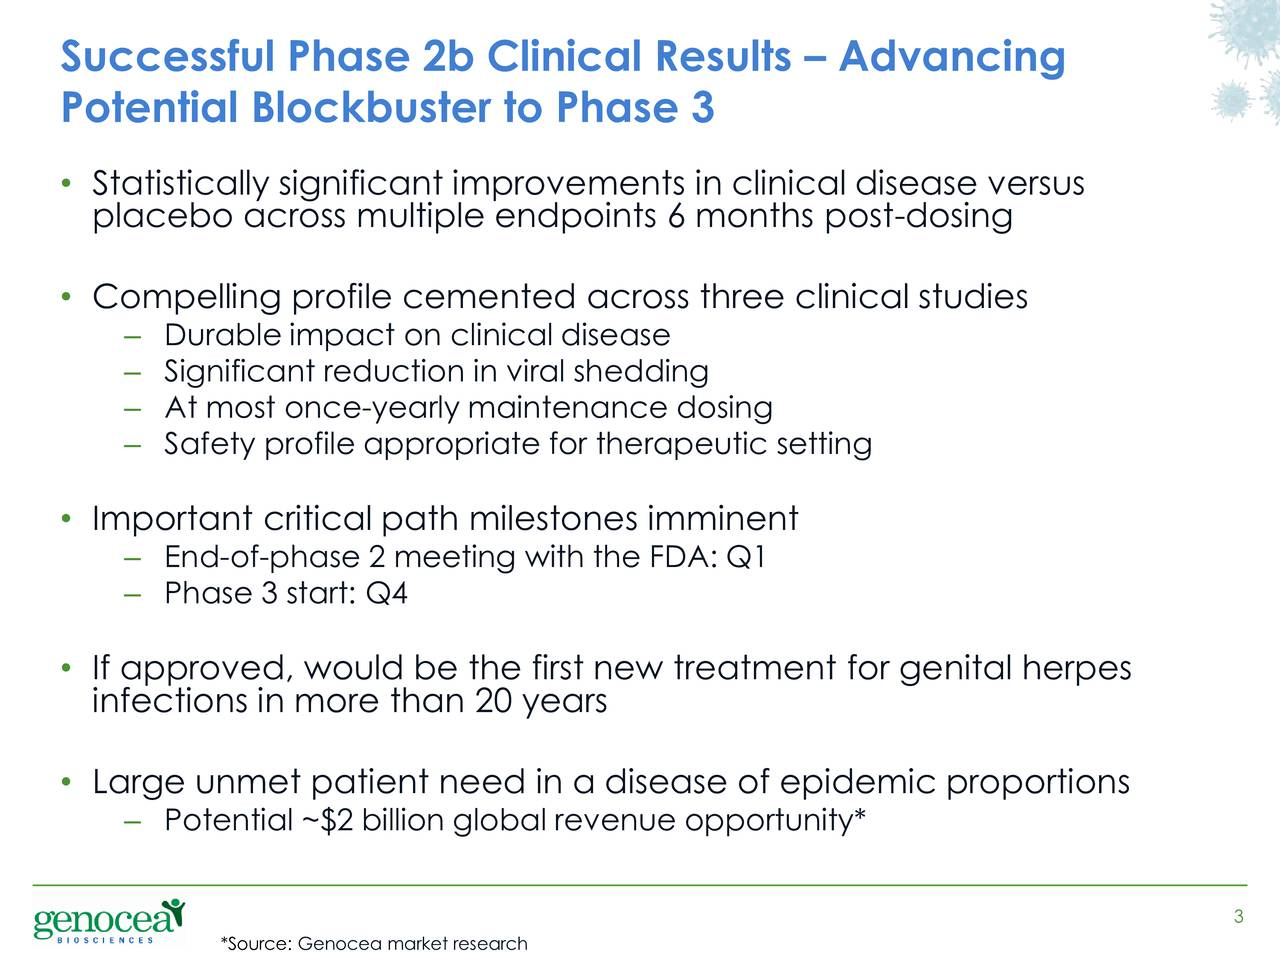 Potential Blockbuster to Phase 3 Statistically significant improvements in clinical disease versus placebo across multiple endpoints 6 months post-dosing Compelling profile cemented across three clinical studies Durable impact on clinical disease Significant reduction in viral shedding At most once-yearly maintenance dosing Safety profile appropriate for therapeutic setting Important critical path milestones imminent End-of-phase 2 meeting with the FDA: Q1 Phase 3 start: Q4 If approved, would be the first new treatment for genital herpes infections in more than 20 years Large unmet patient need in a disease of epidemic proportions Potential ~$2 billion global revenue opportunity* 3